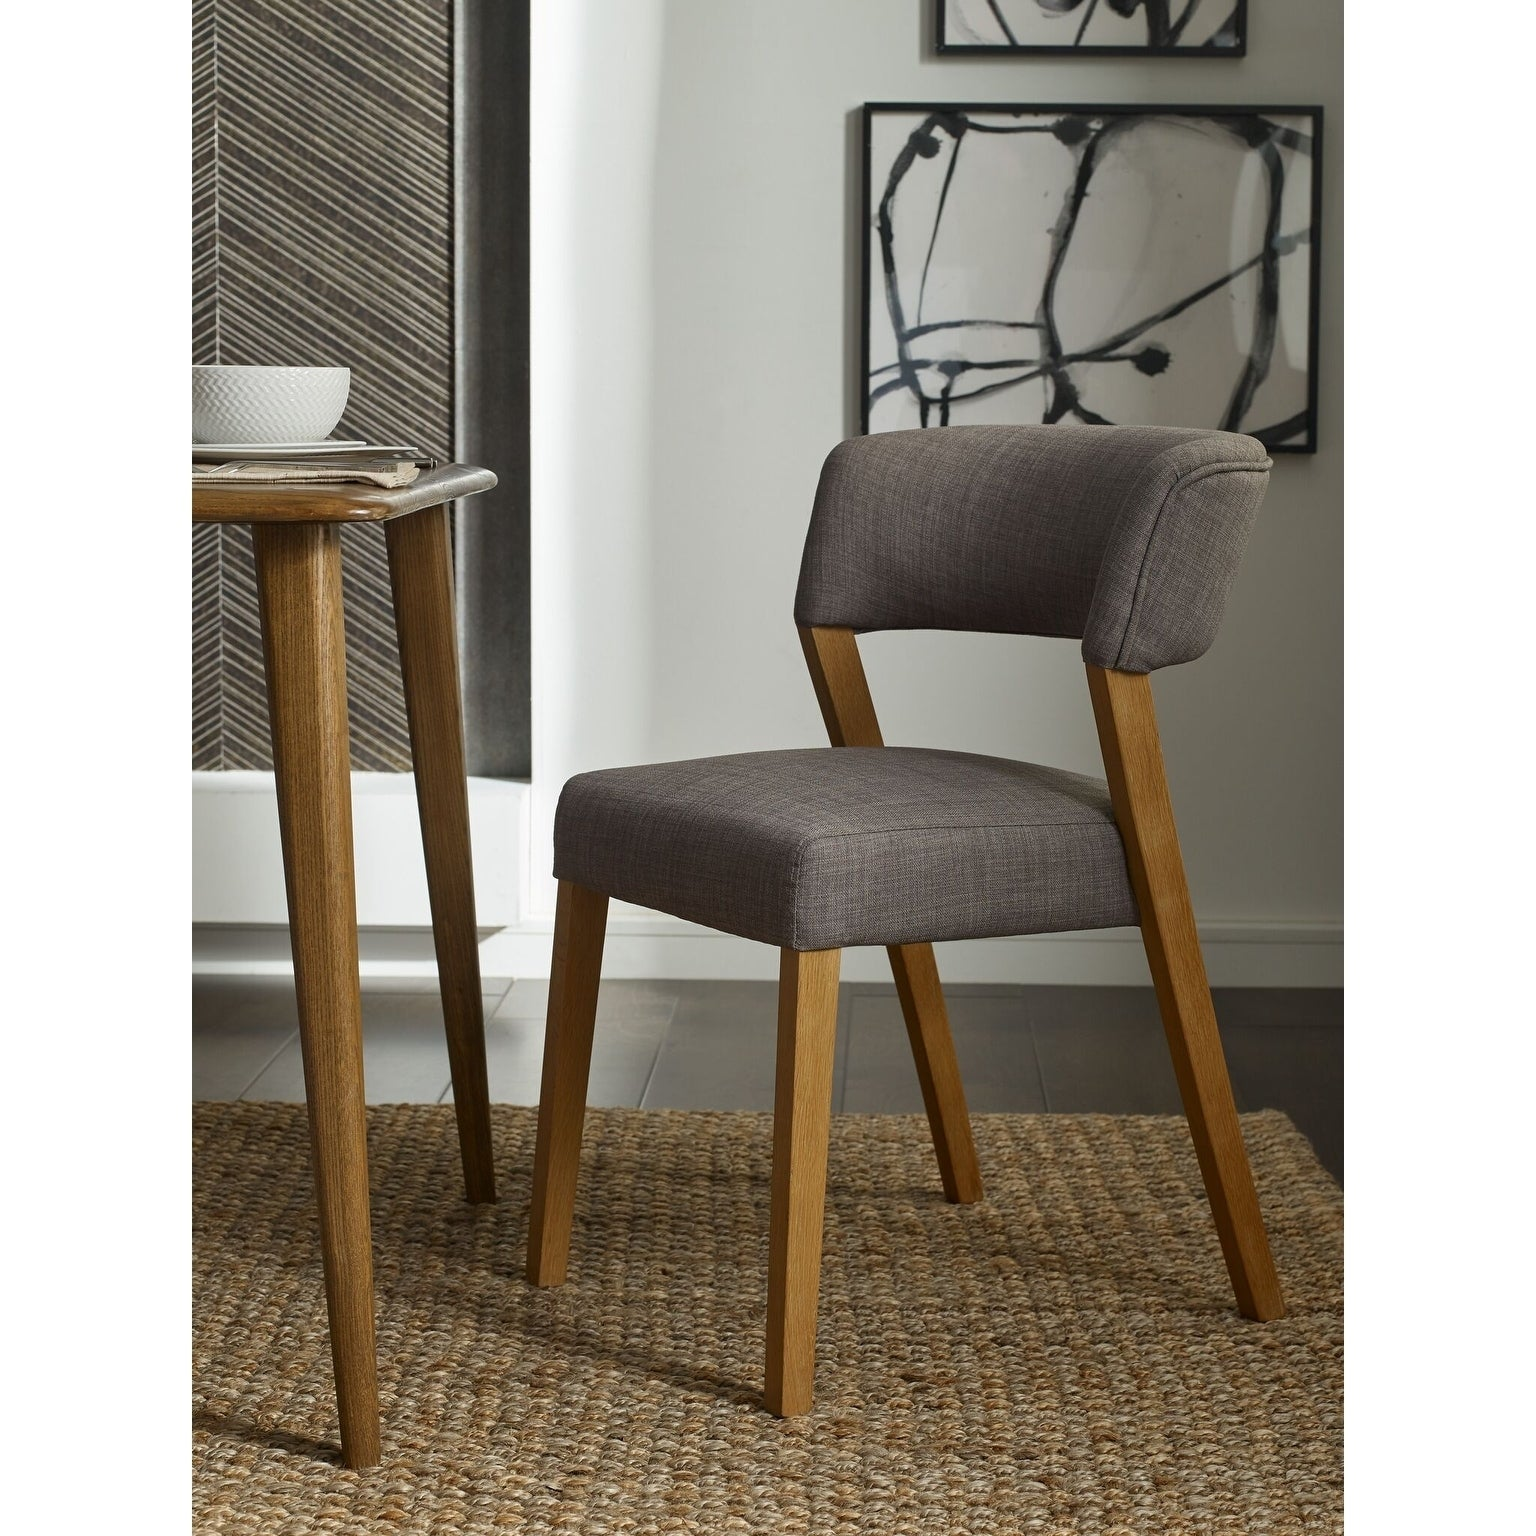 Incredible Tommy Hilfiger Waltham Dining Chair Short Links Chair Design For Home Short Linksinfo